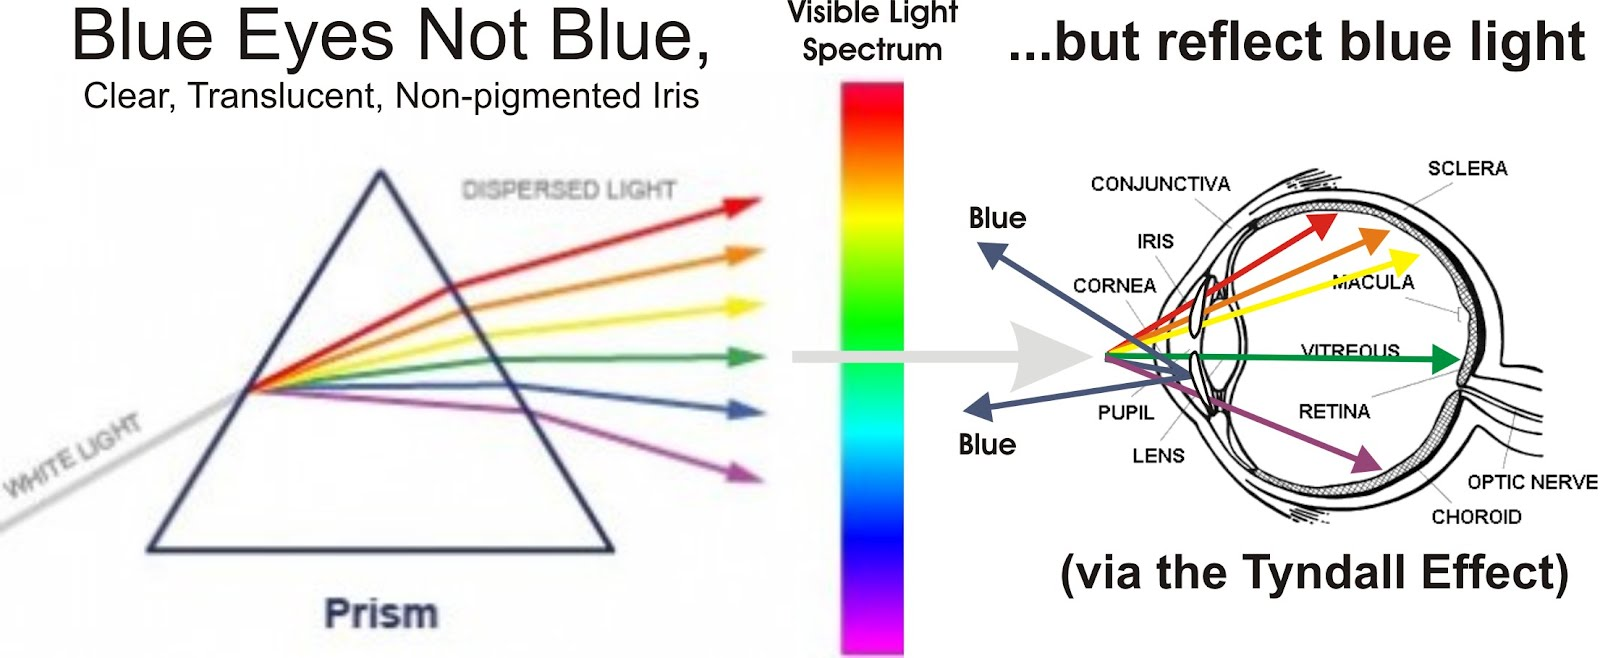 hight resolution of acting white acting black blue eyes not really blue the tyndall effect snake eye diagram blue eye diagram